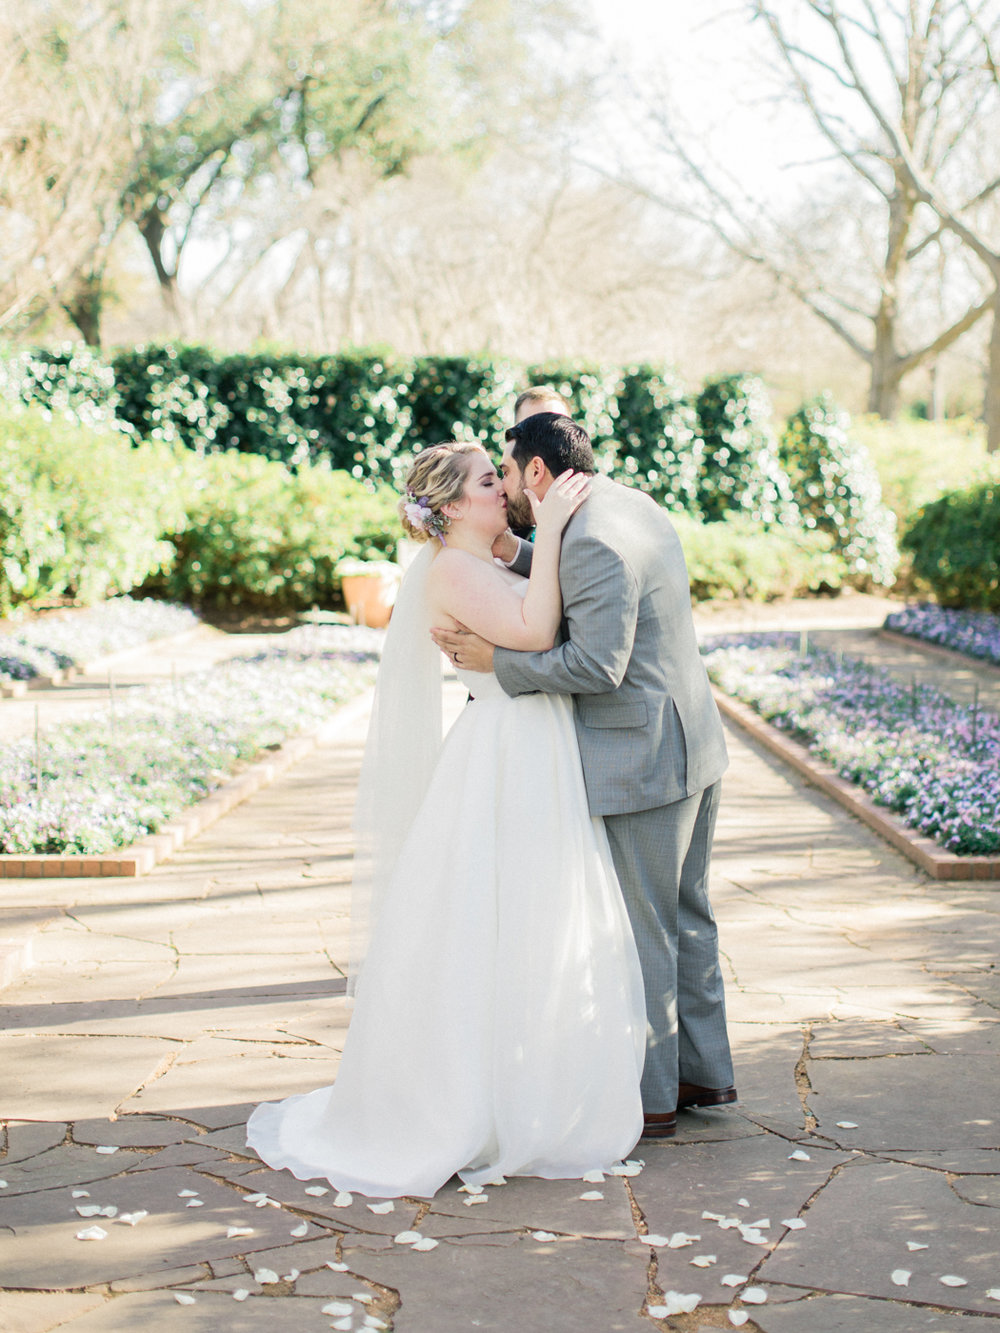 Dallas Arboretum & Botanical Garden Wedding Photos - Light and Airy Photography